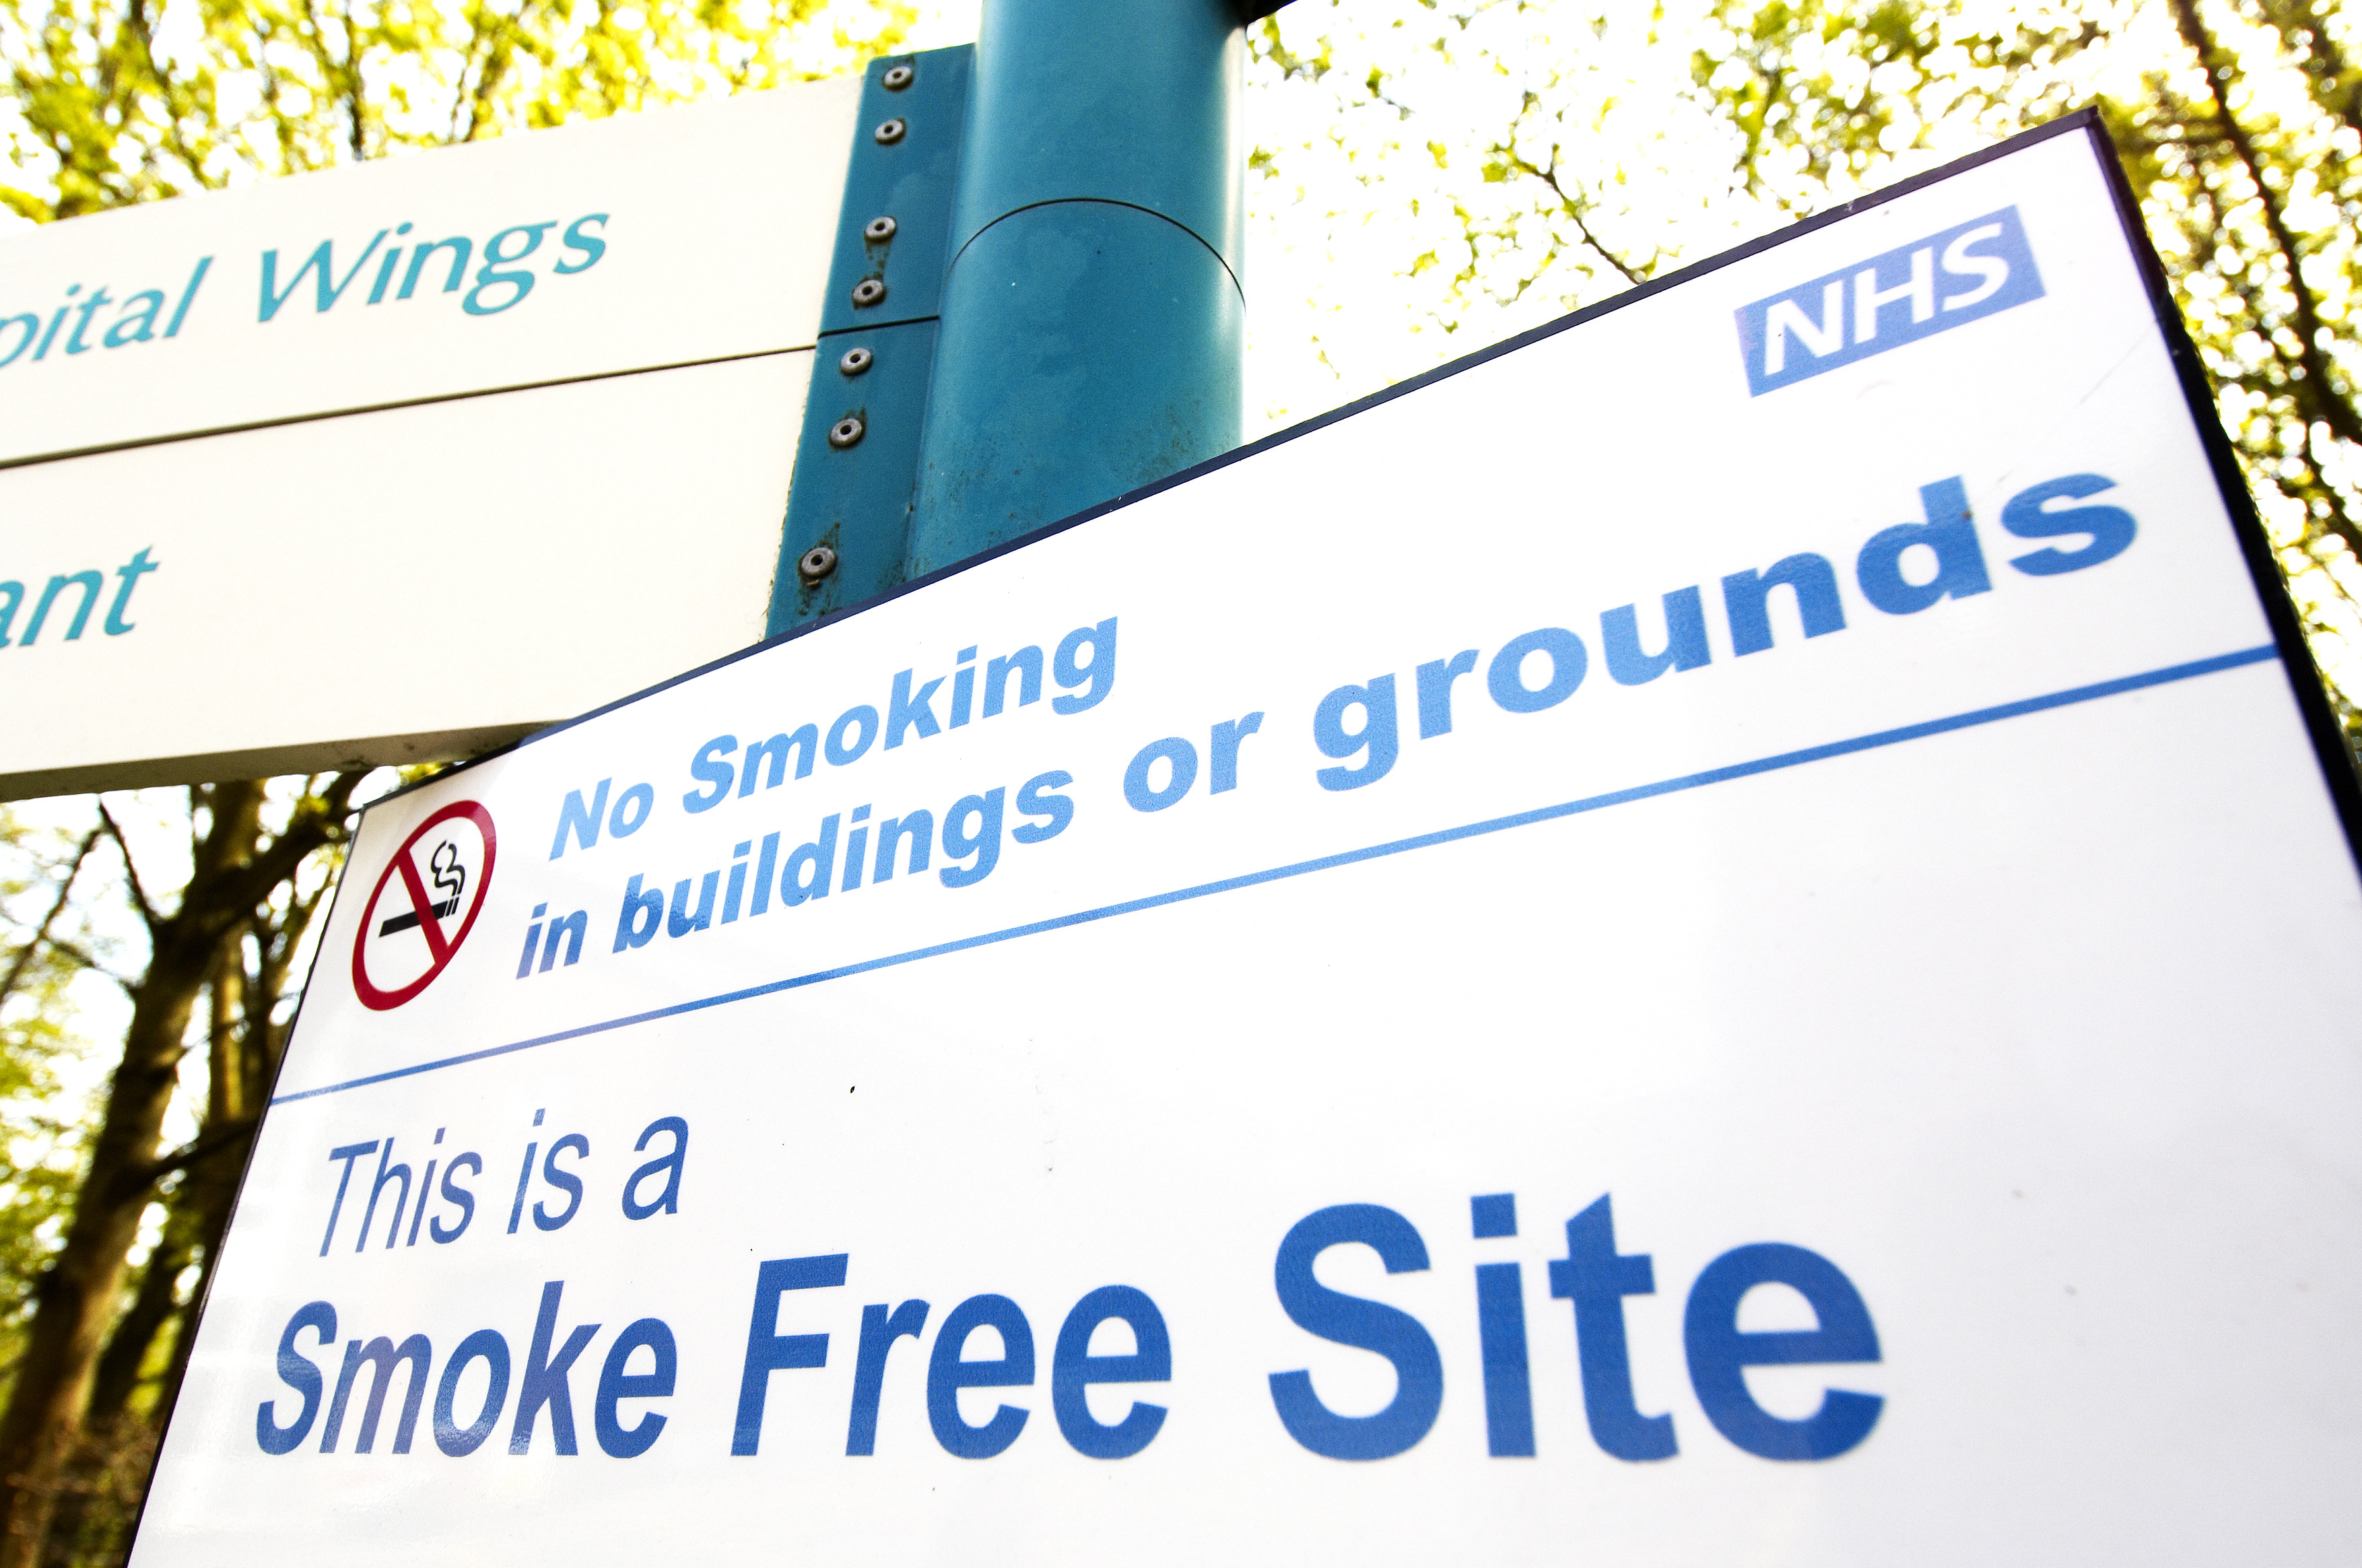 Smokefree NHS - troubleshooting tips for hospitals - Public